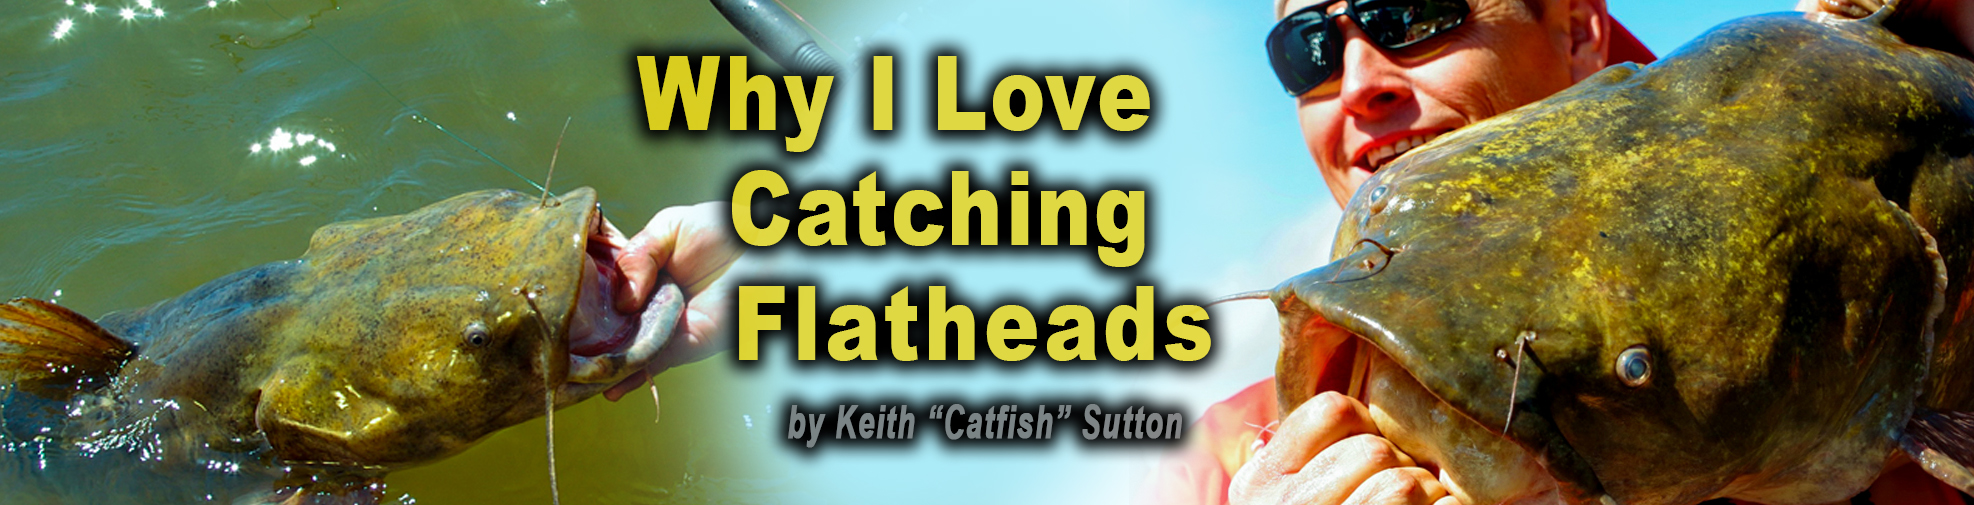 Article slider art for why I love catching flatheads by Keith catfish sutton